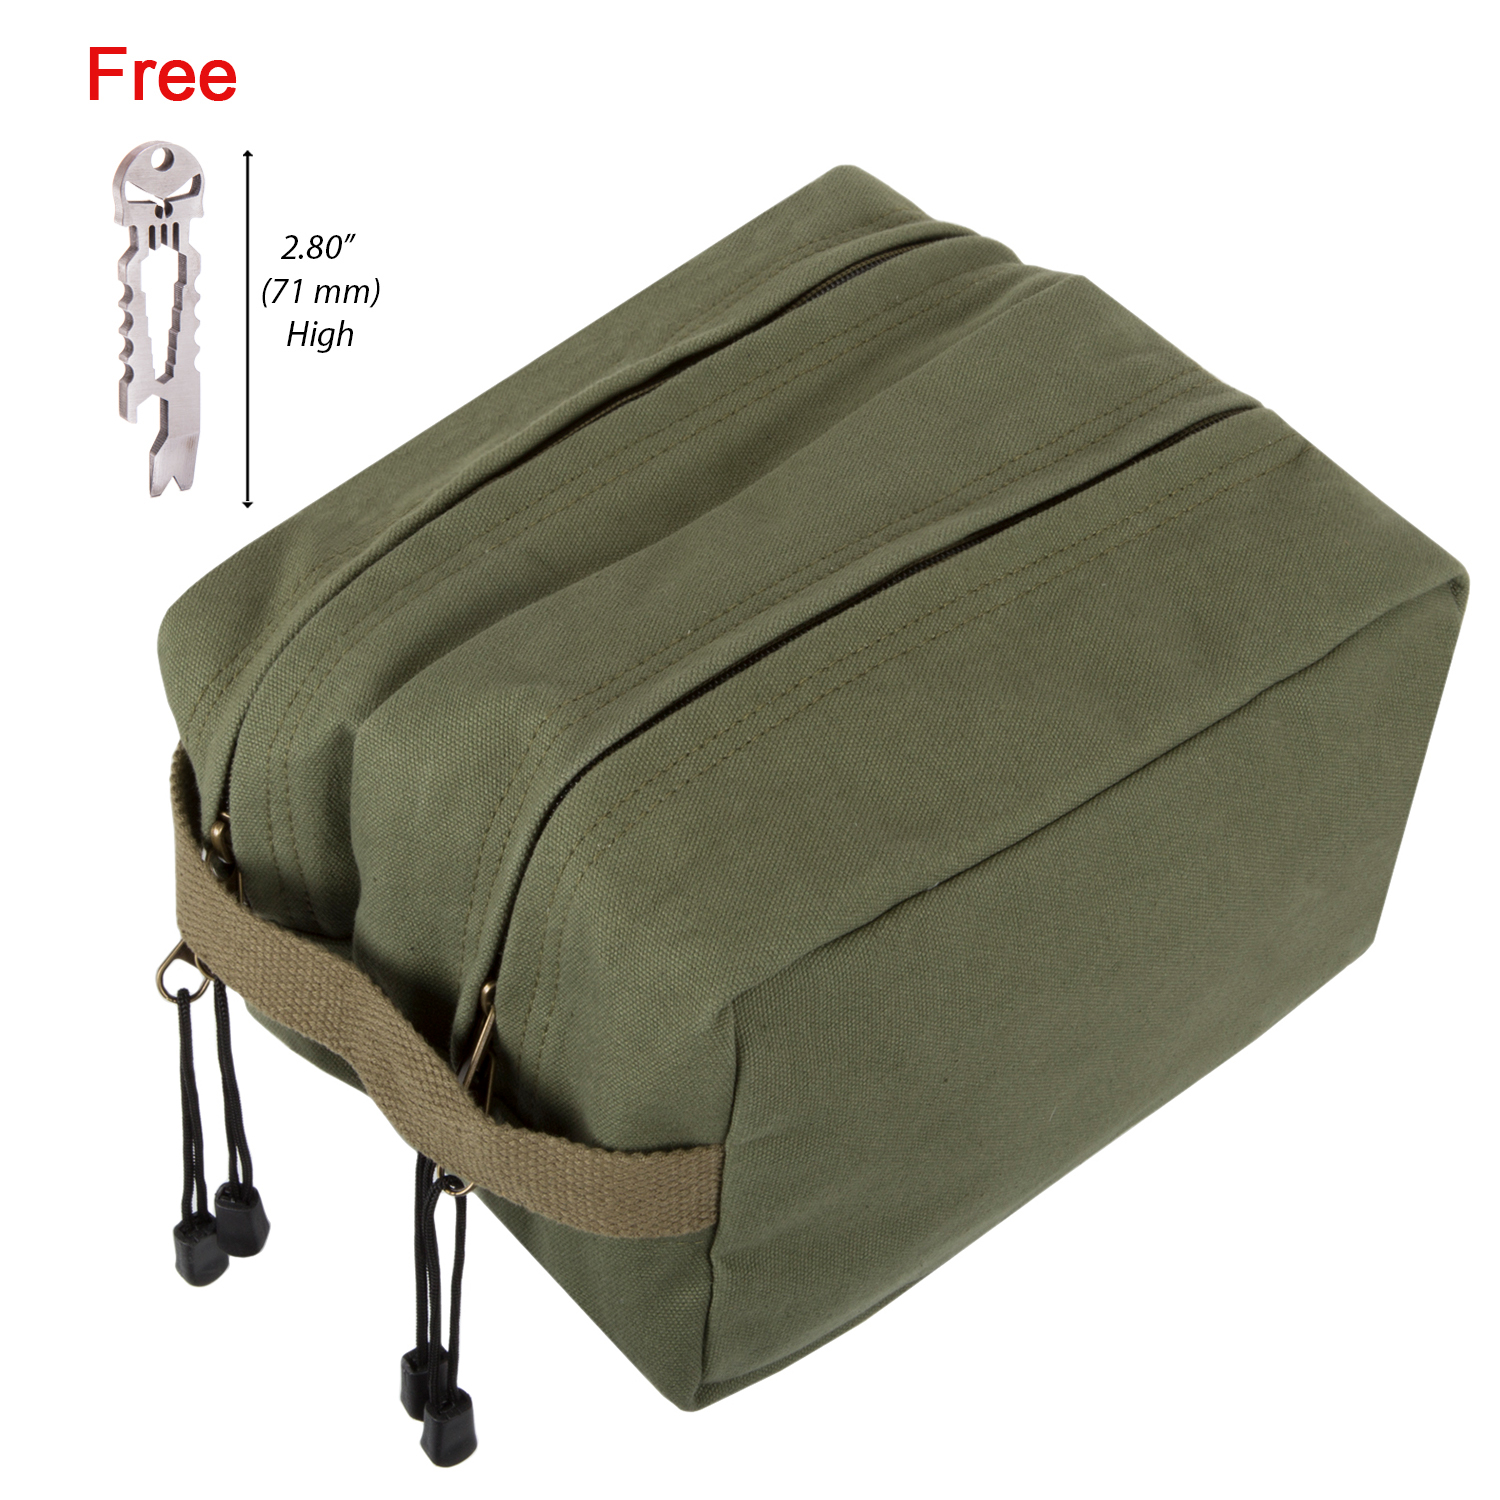 Canvas Dual Compartment Travel Toiletry Bag with FREE Punisher Tool